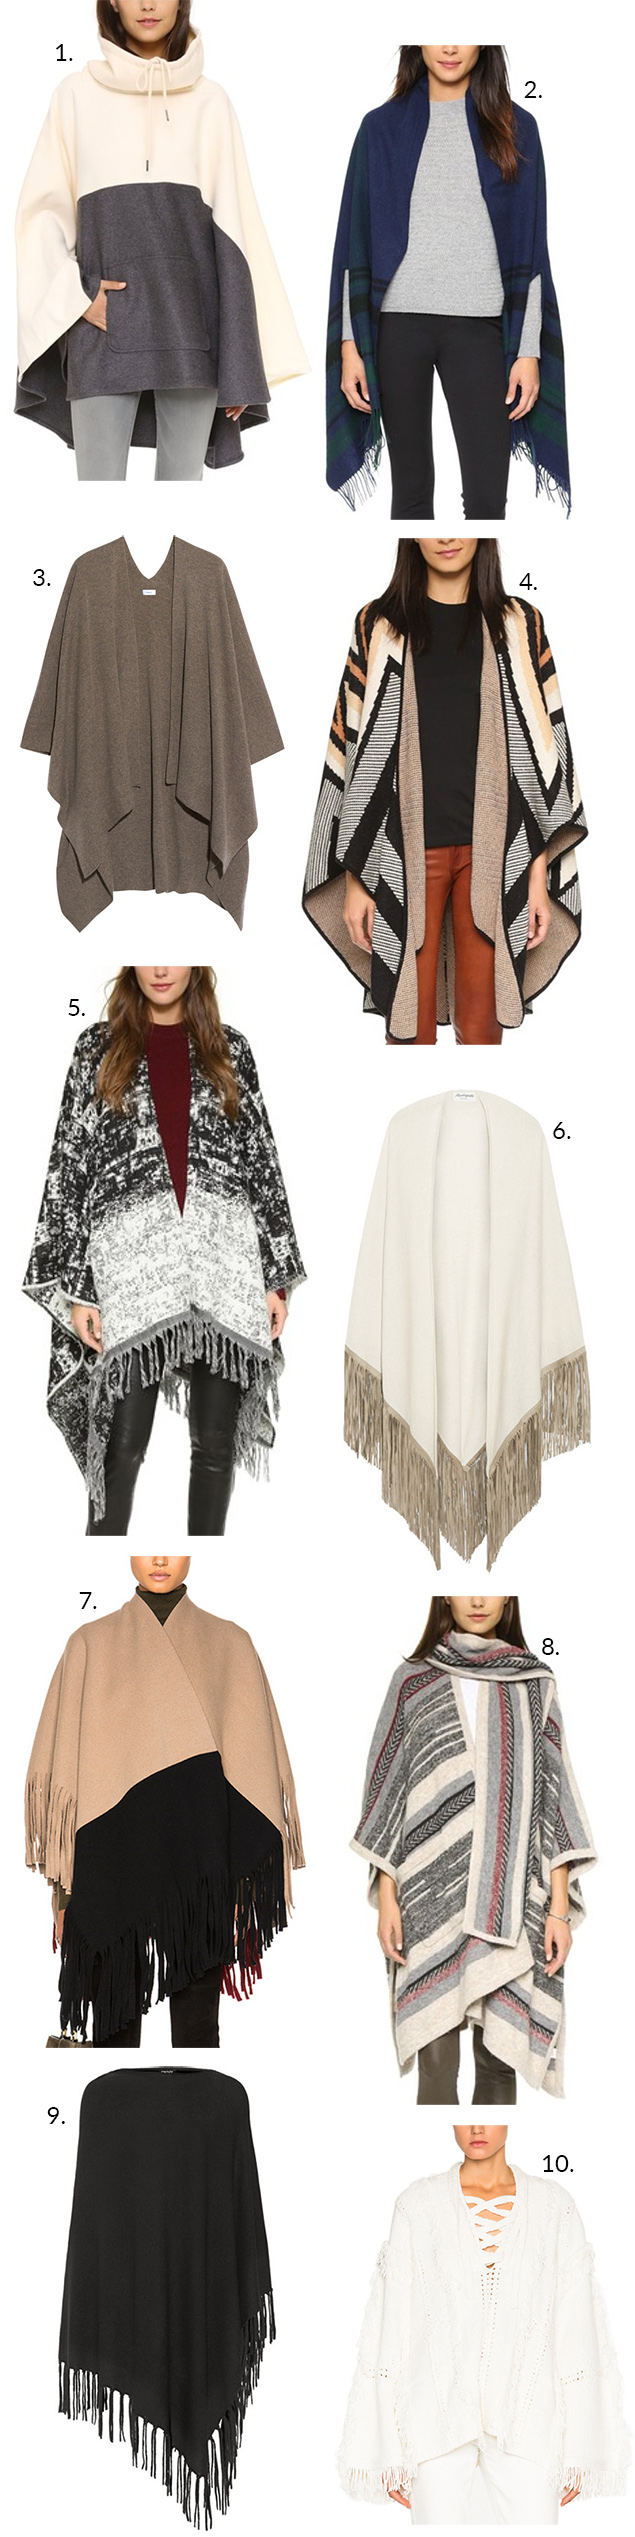 ponchos fall 2015 trends